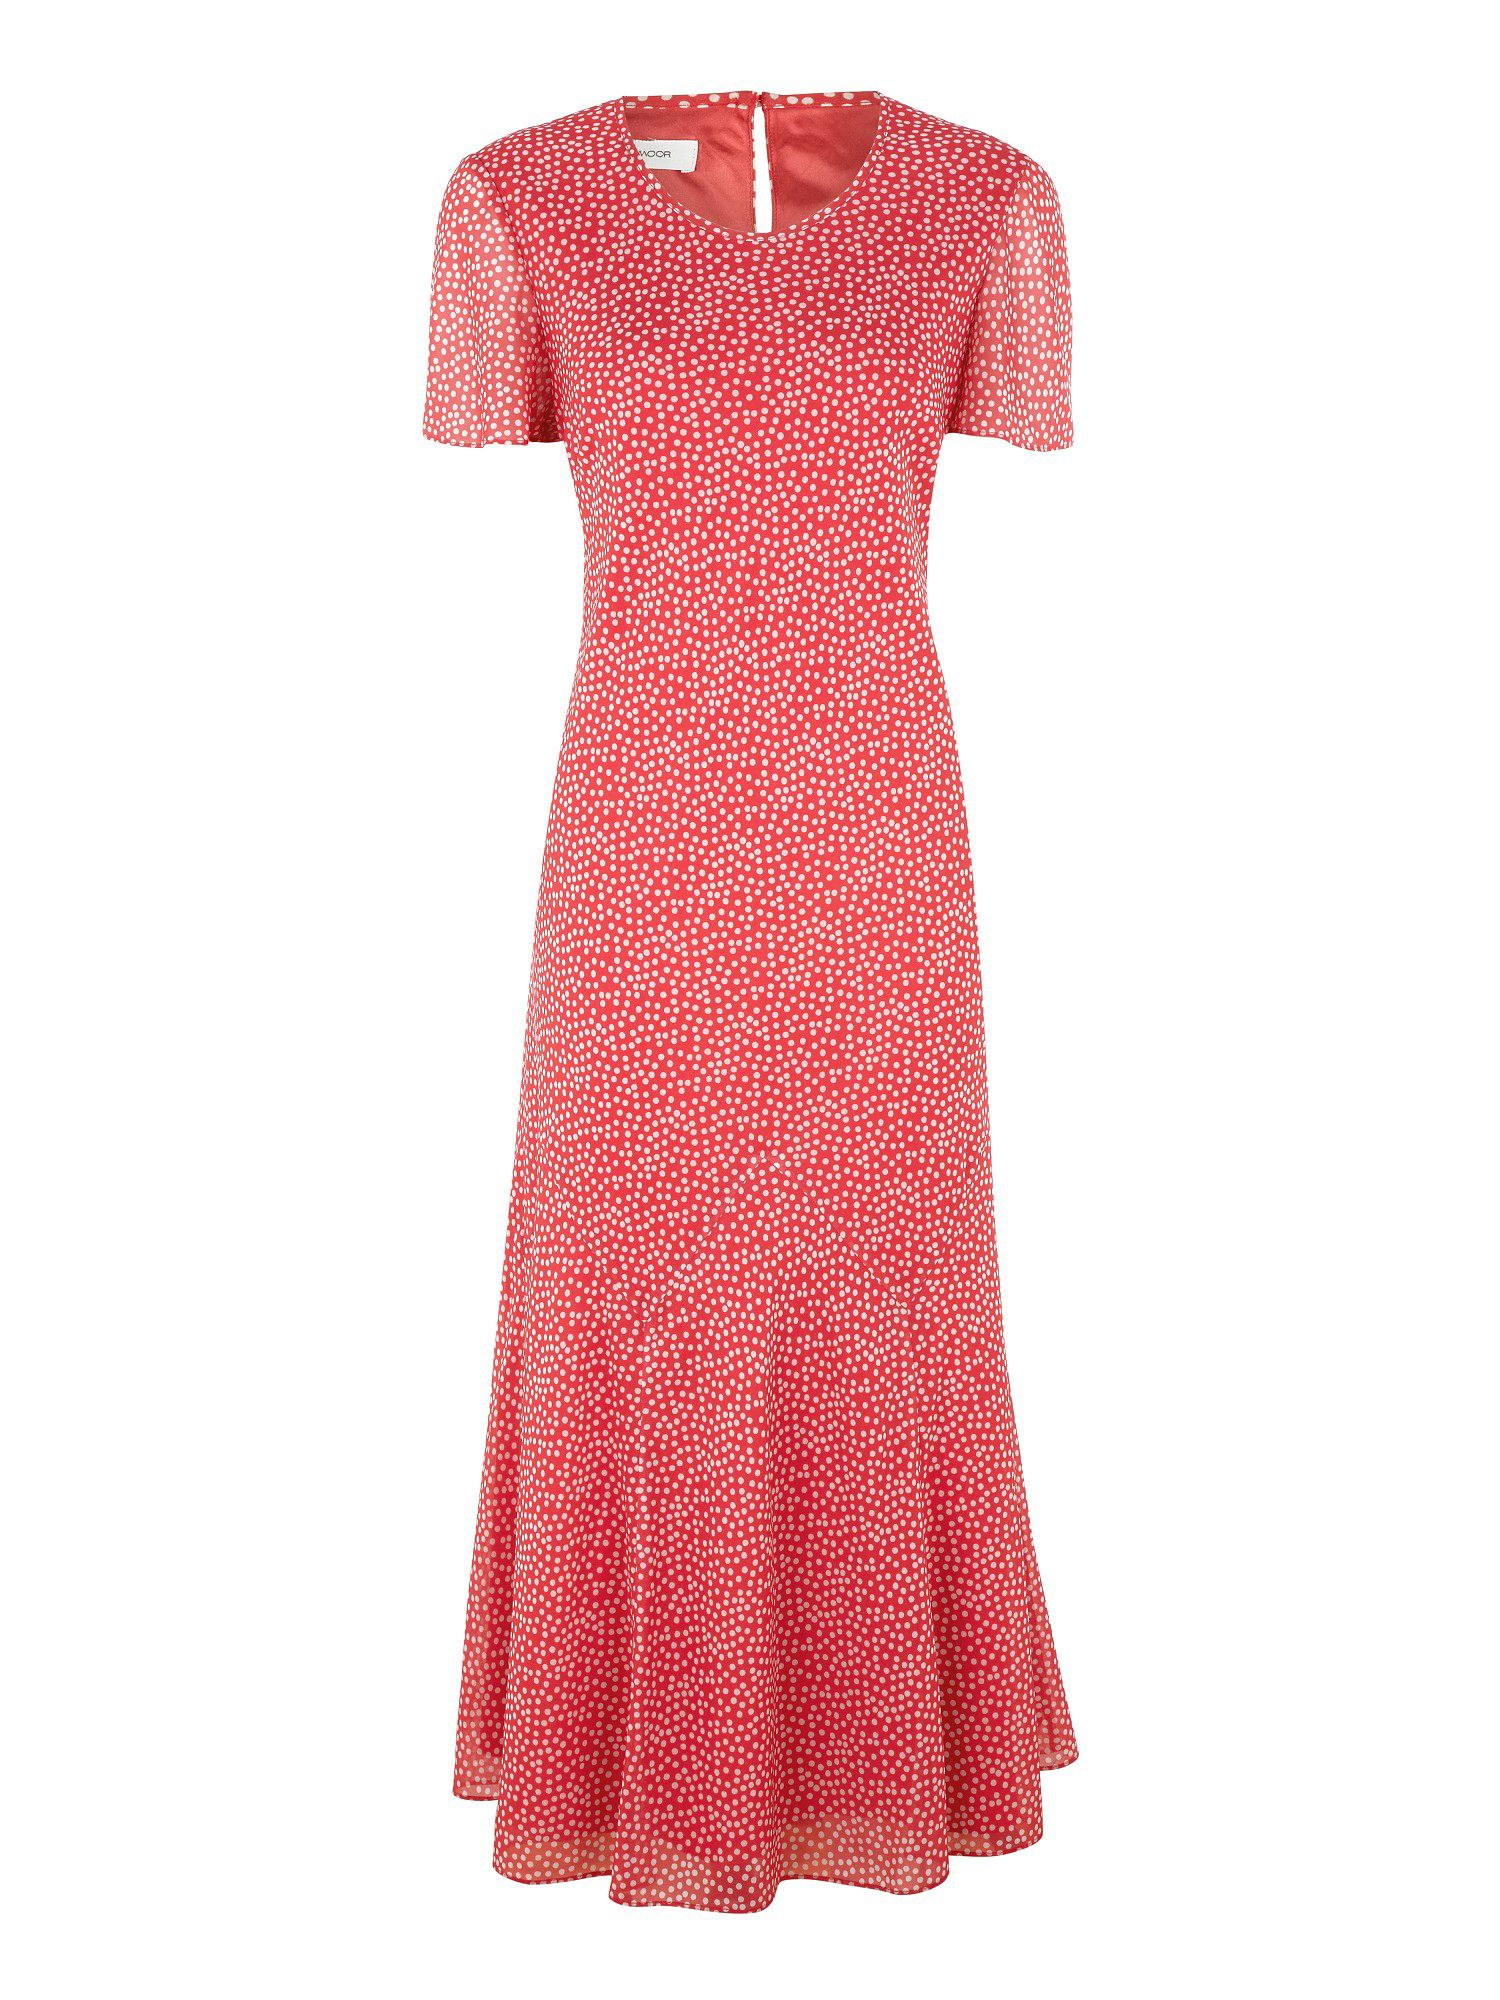 Coral chiffon spot dress